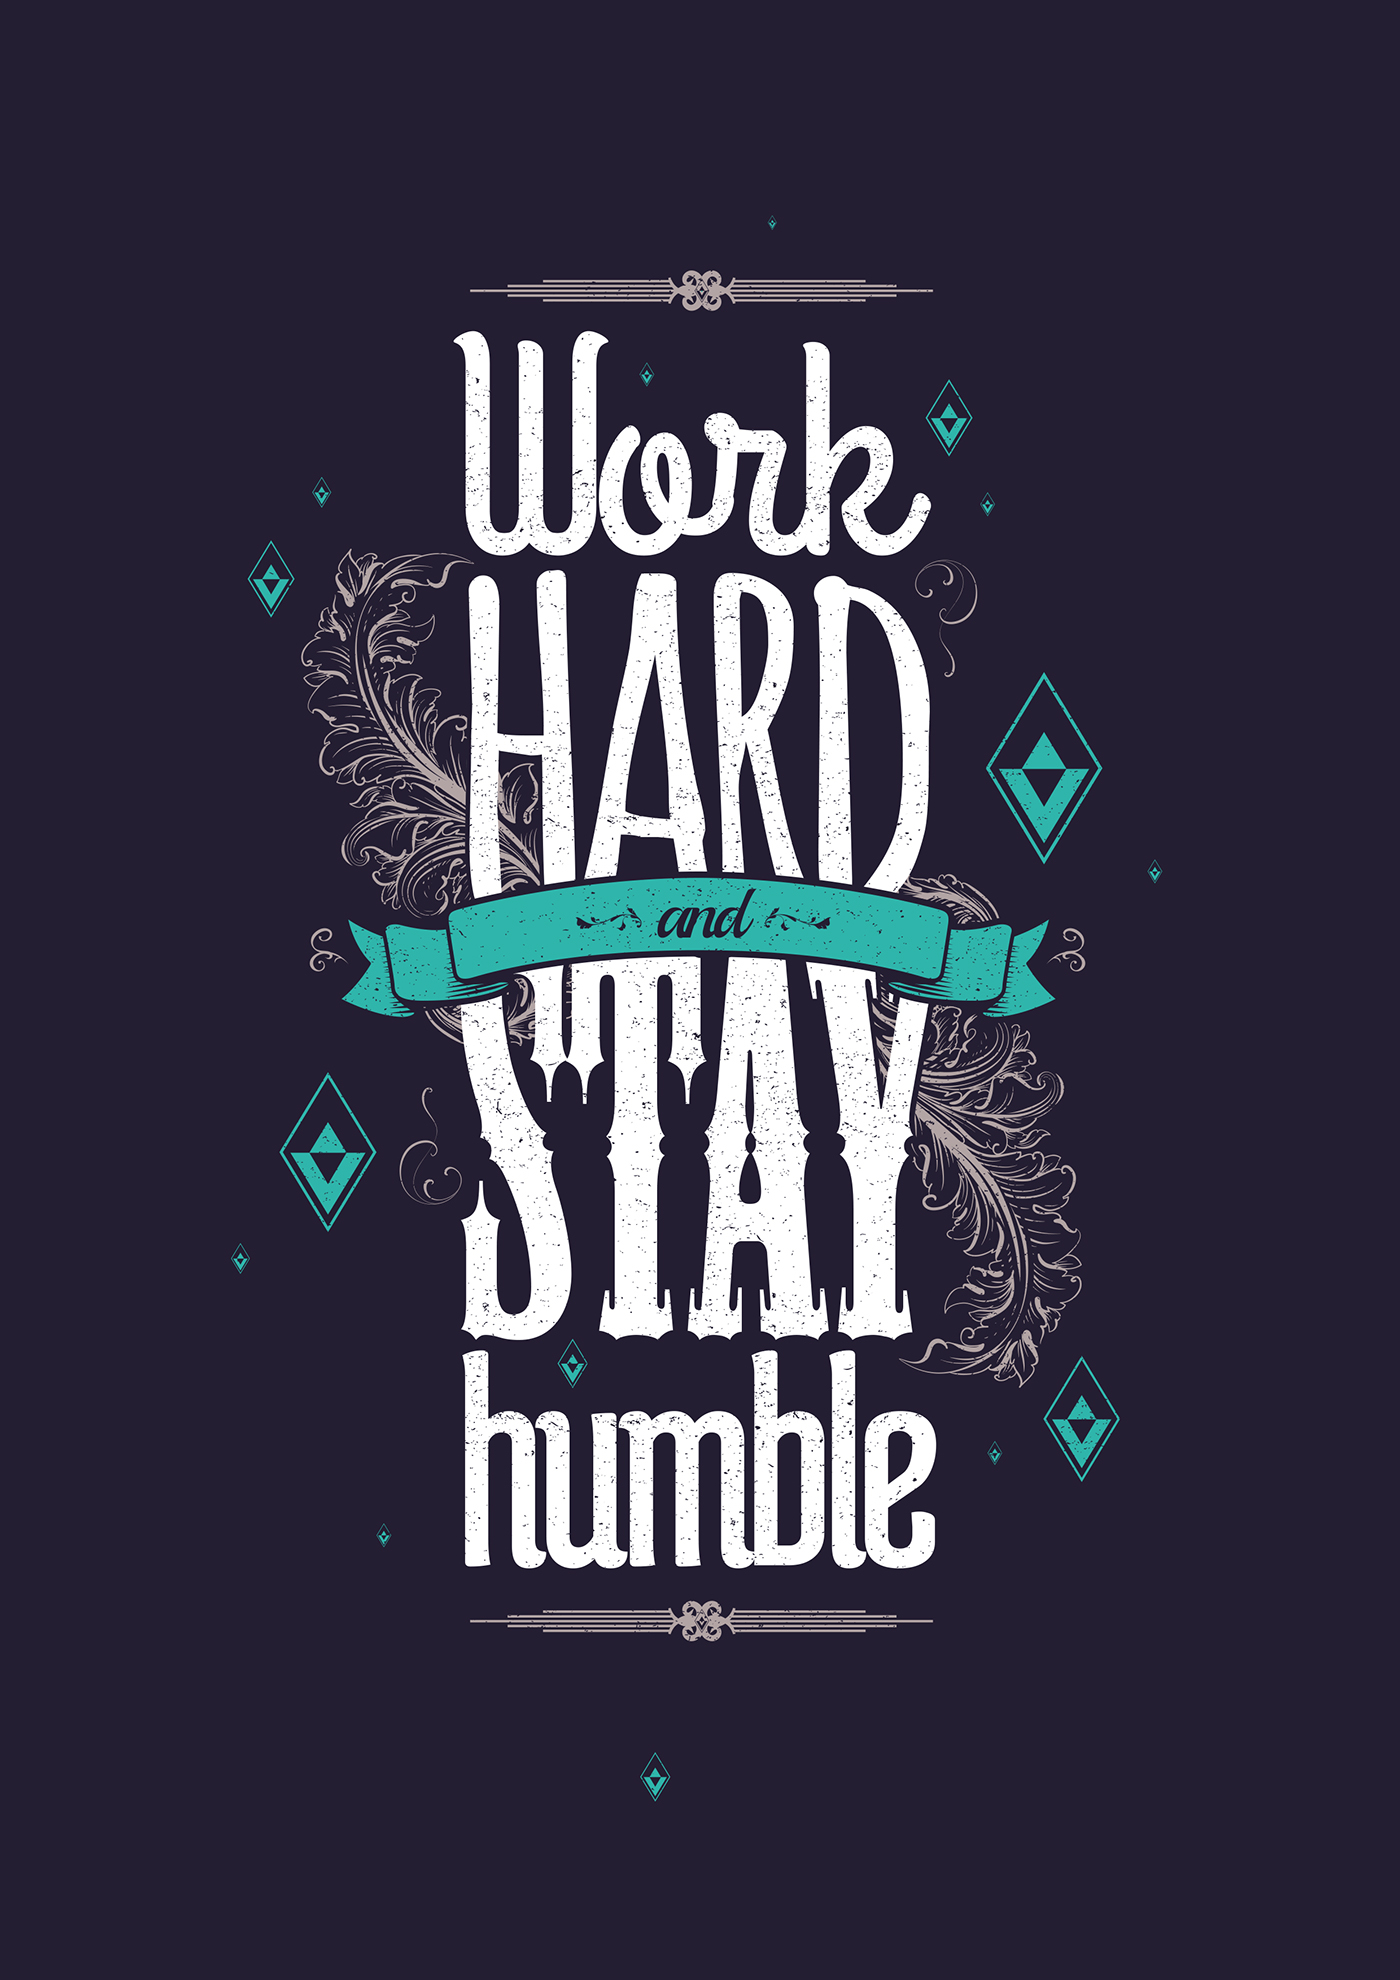 Kendrick Lamar Quote Wallpaper Work Hard Stay Humble On Behance